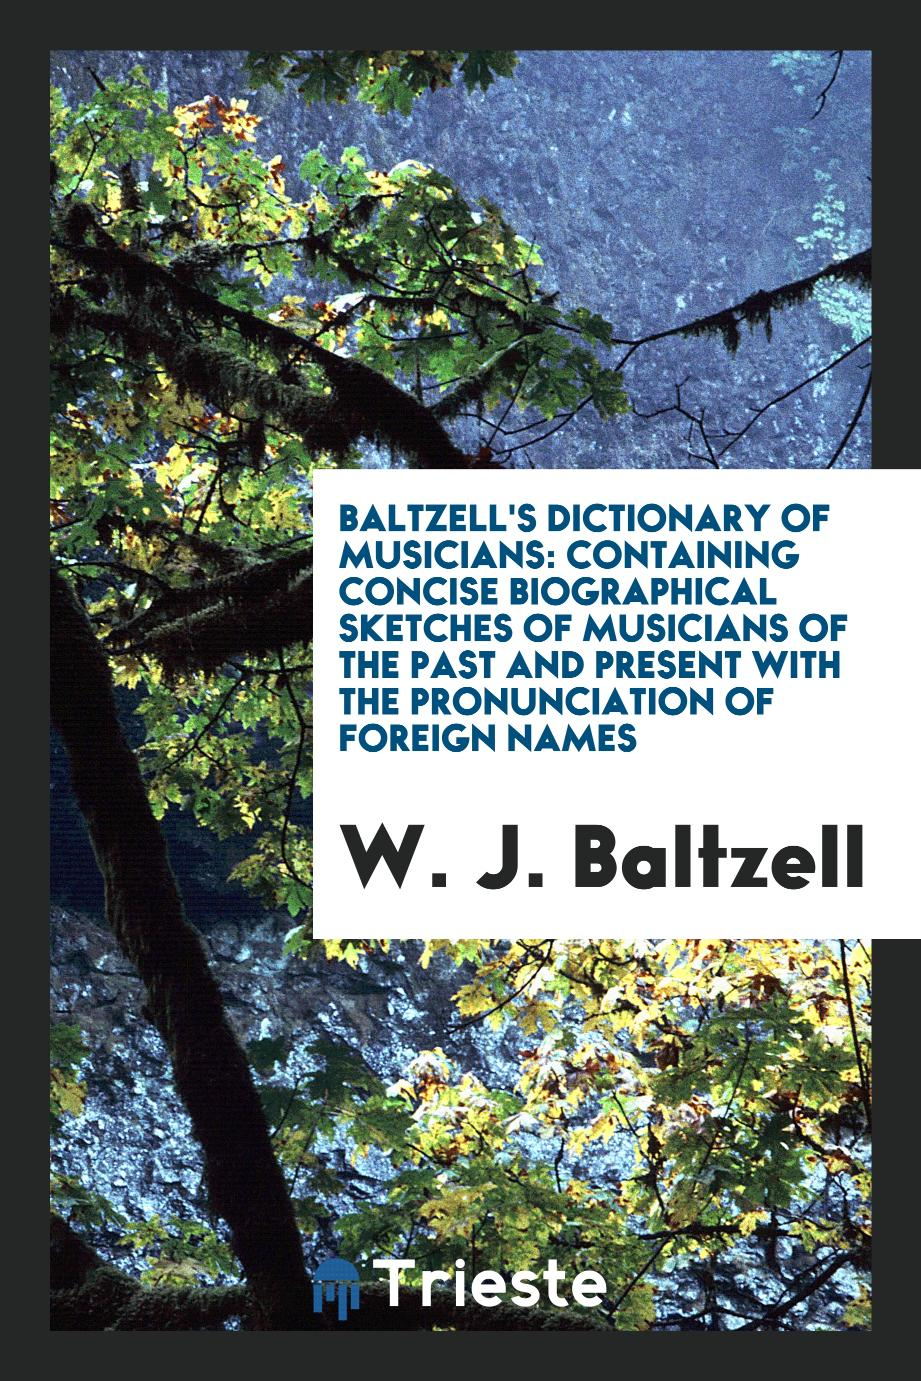 Baltzell's Dictionary of Musicians: Containing Concise Biographical Sketches of Musicians of the past and Present with the Pronunciation of Foreign Names